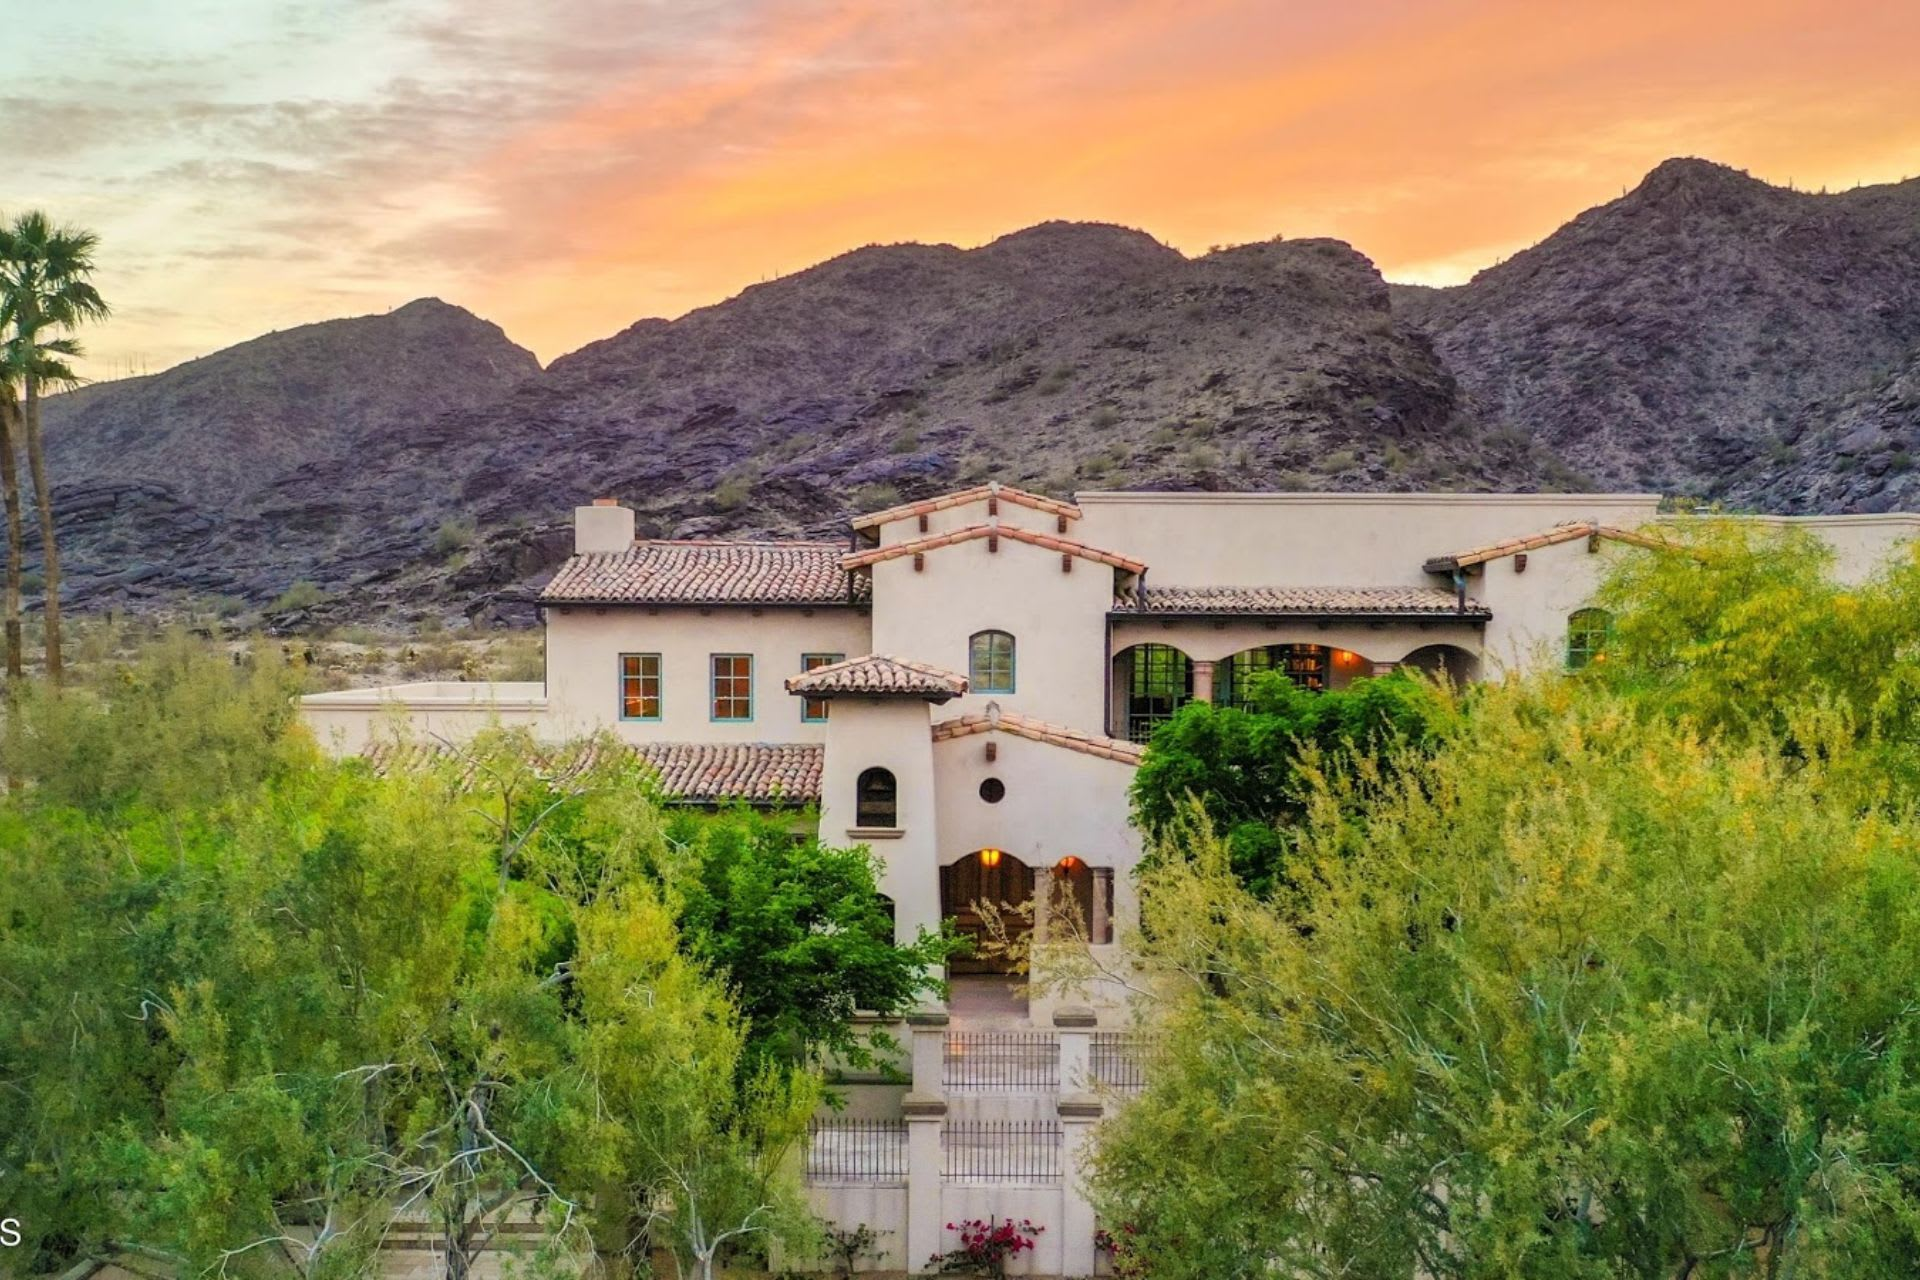 The Benefits of Listing Your Home With An Ahwatukee Realtor